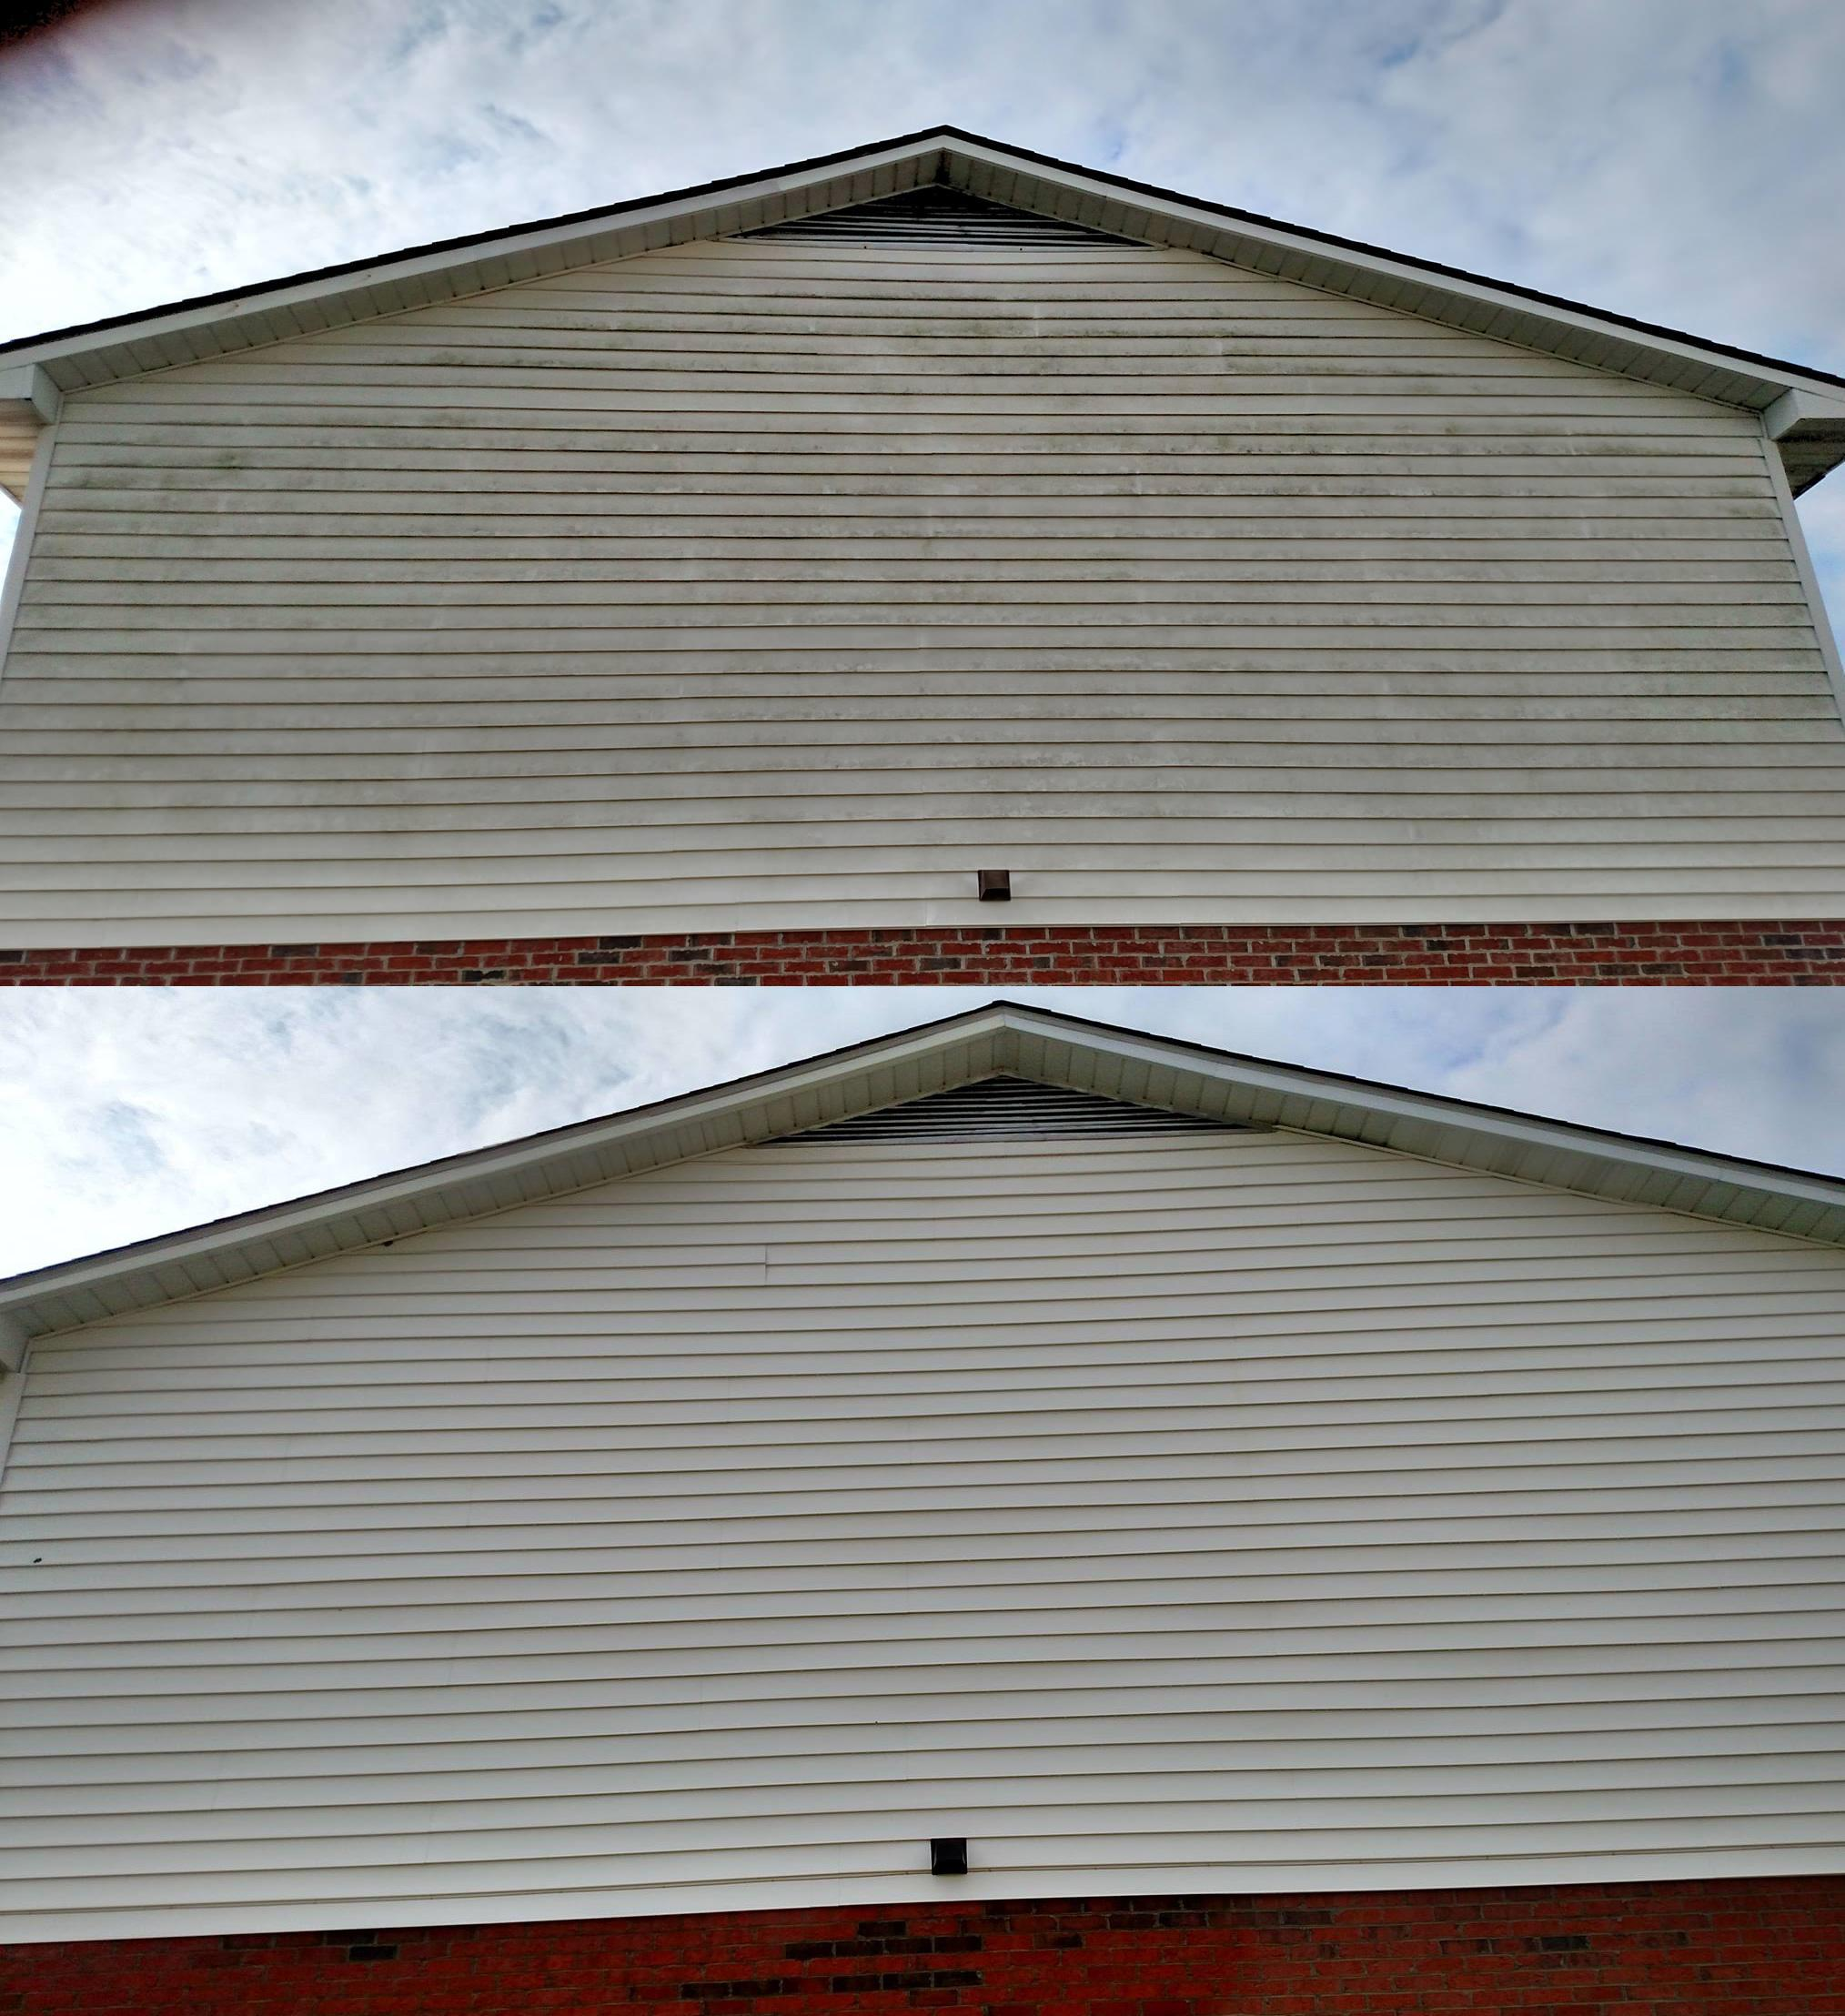 We use only low pressure soft washing to safely clean homes throughout Southeastern North Carolina